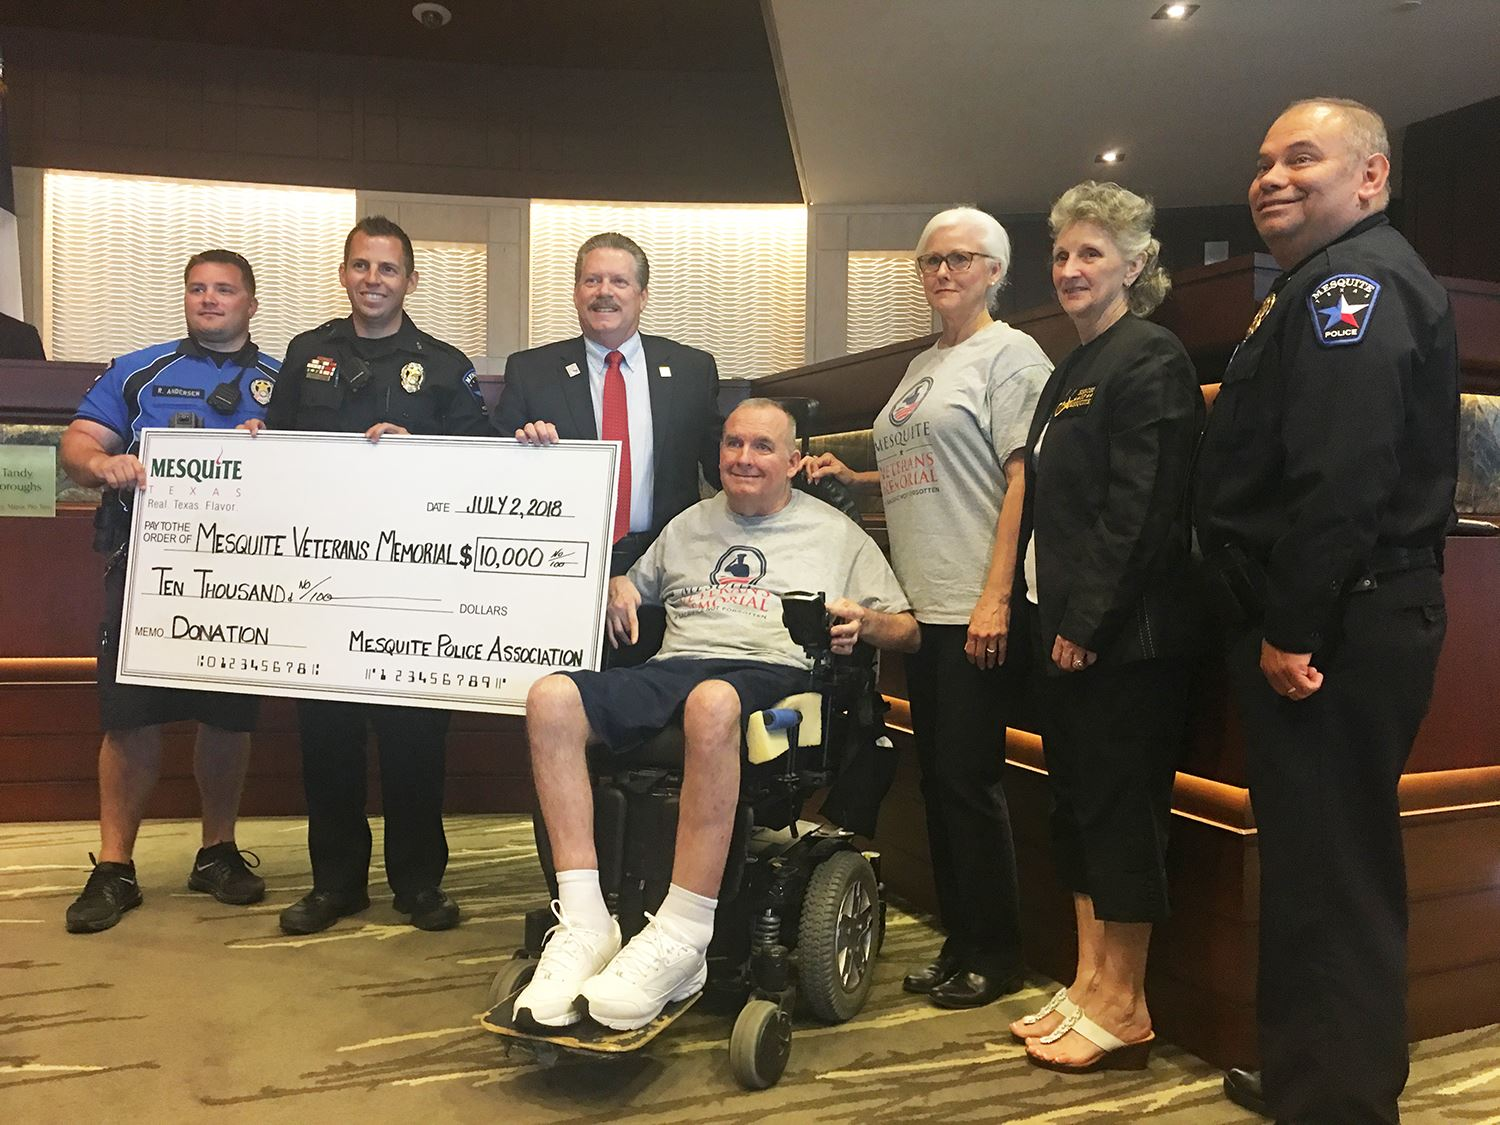 7-2-18 MPA donates to Mesquite Veterans Memorial